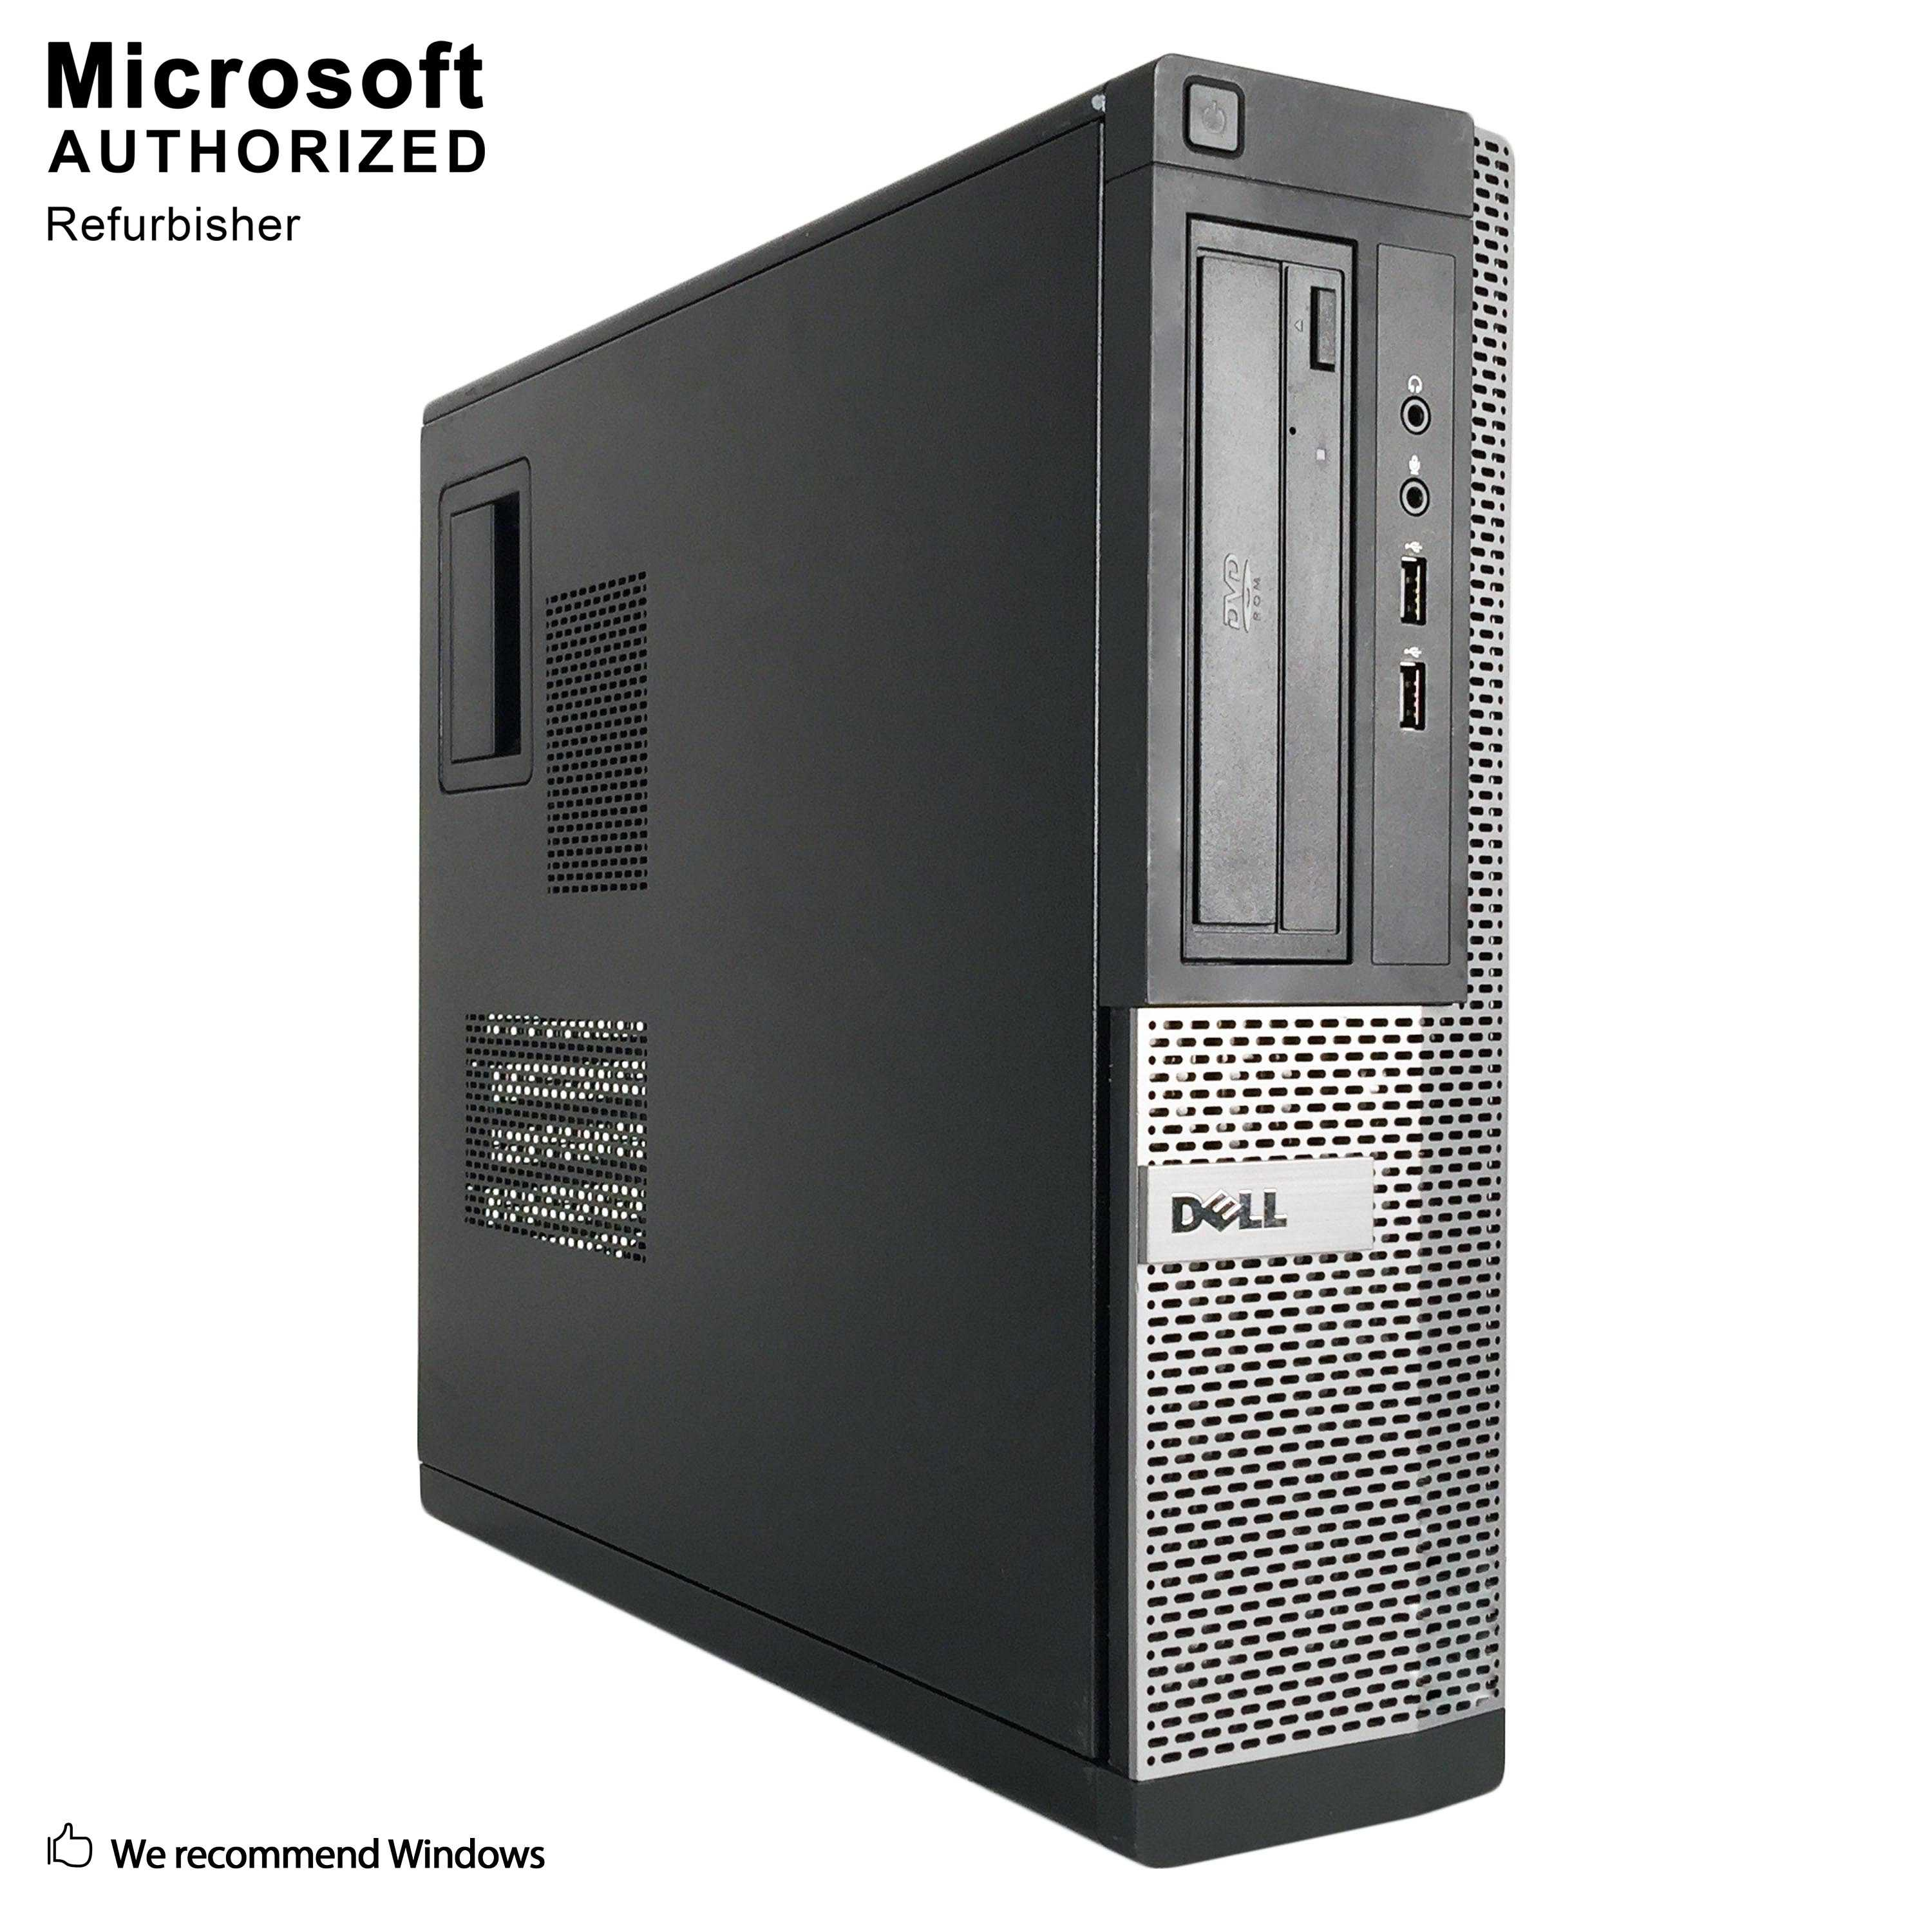 Certified Refurbished Dell OptiPlex 390 Desktop Intel Core i3-2100 3.10 G 8GB RAM 1TB HDD DVD Drive USB WIFI USB BT 4.0 VGA HDMI Win 10 Pro 64 Bit1 Year Warranty